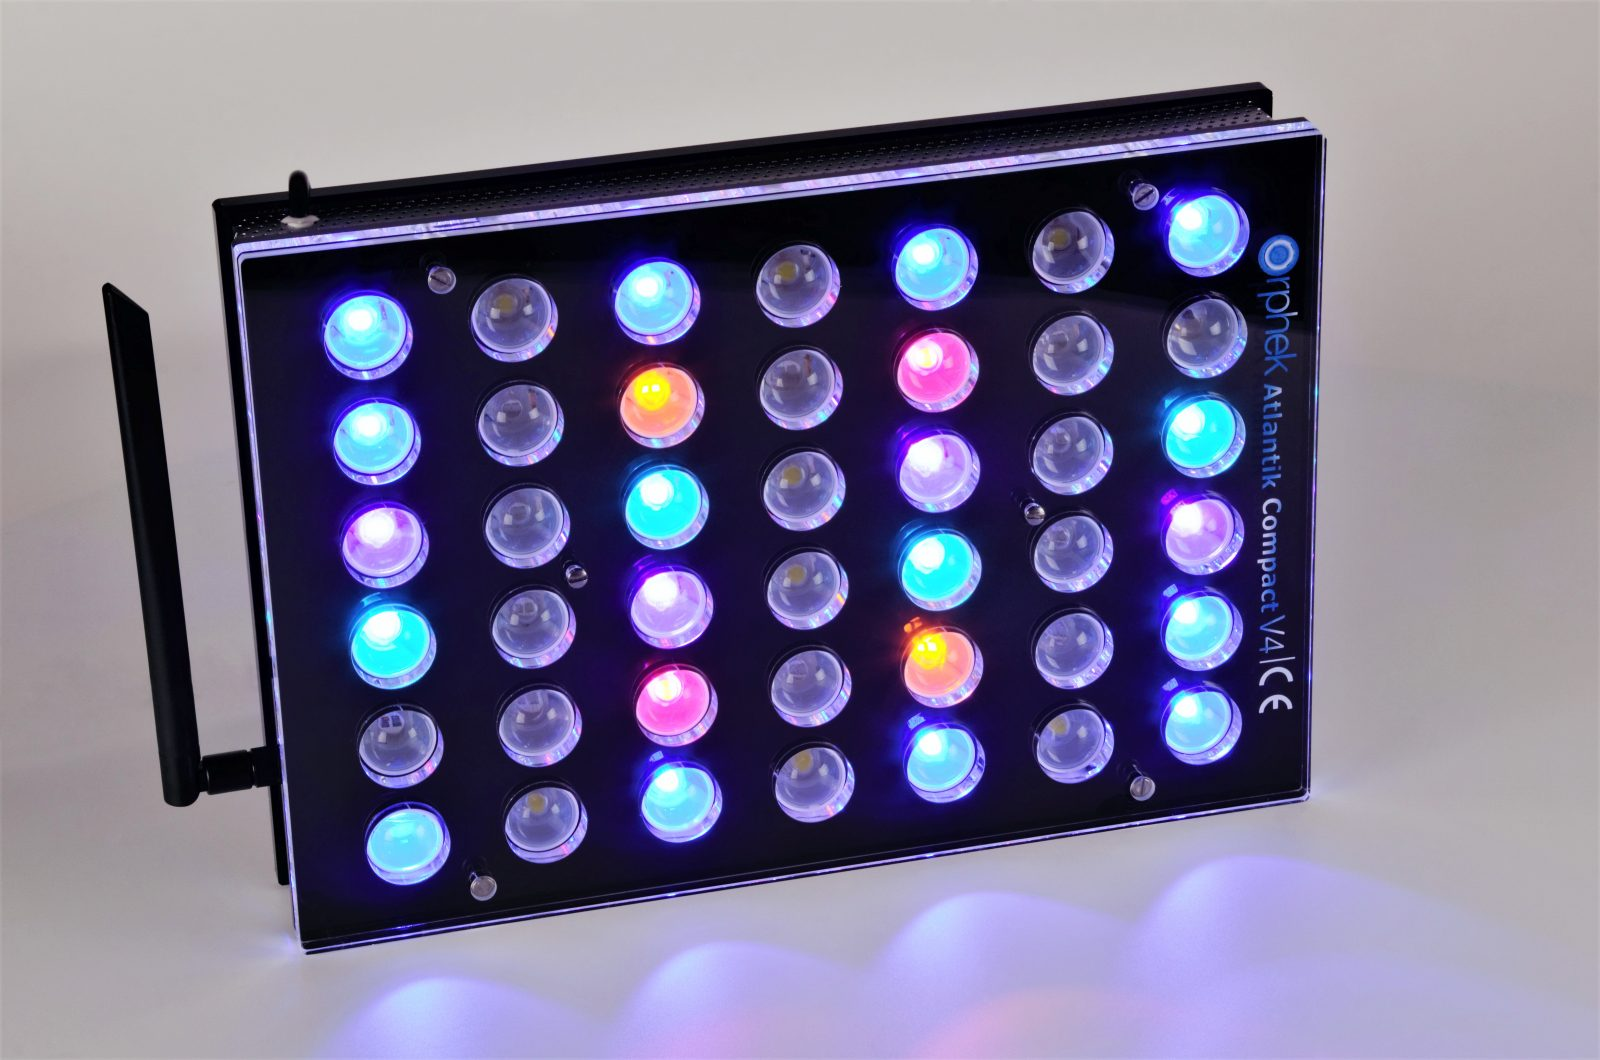 Orphek-Aquarium-Iluminación-LED-Atlantik -Compact-V4-light-on-channel 2 + 4